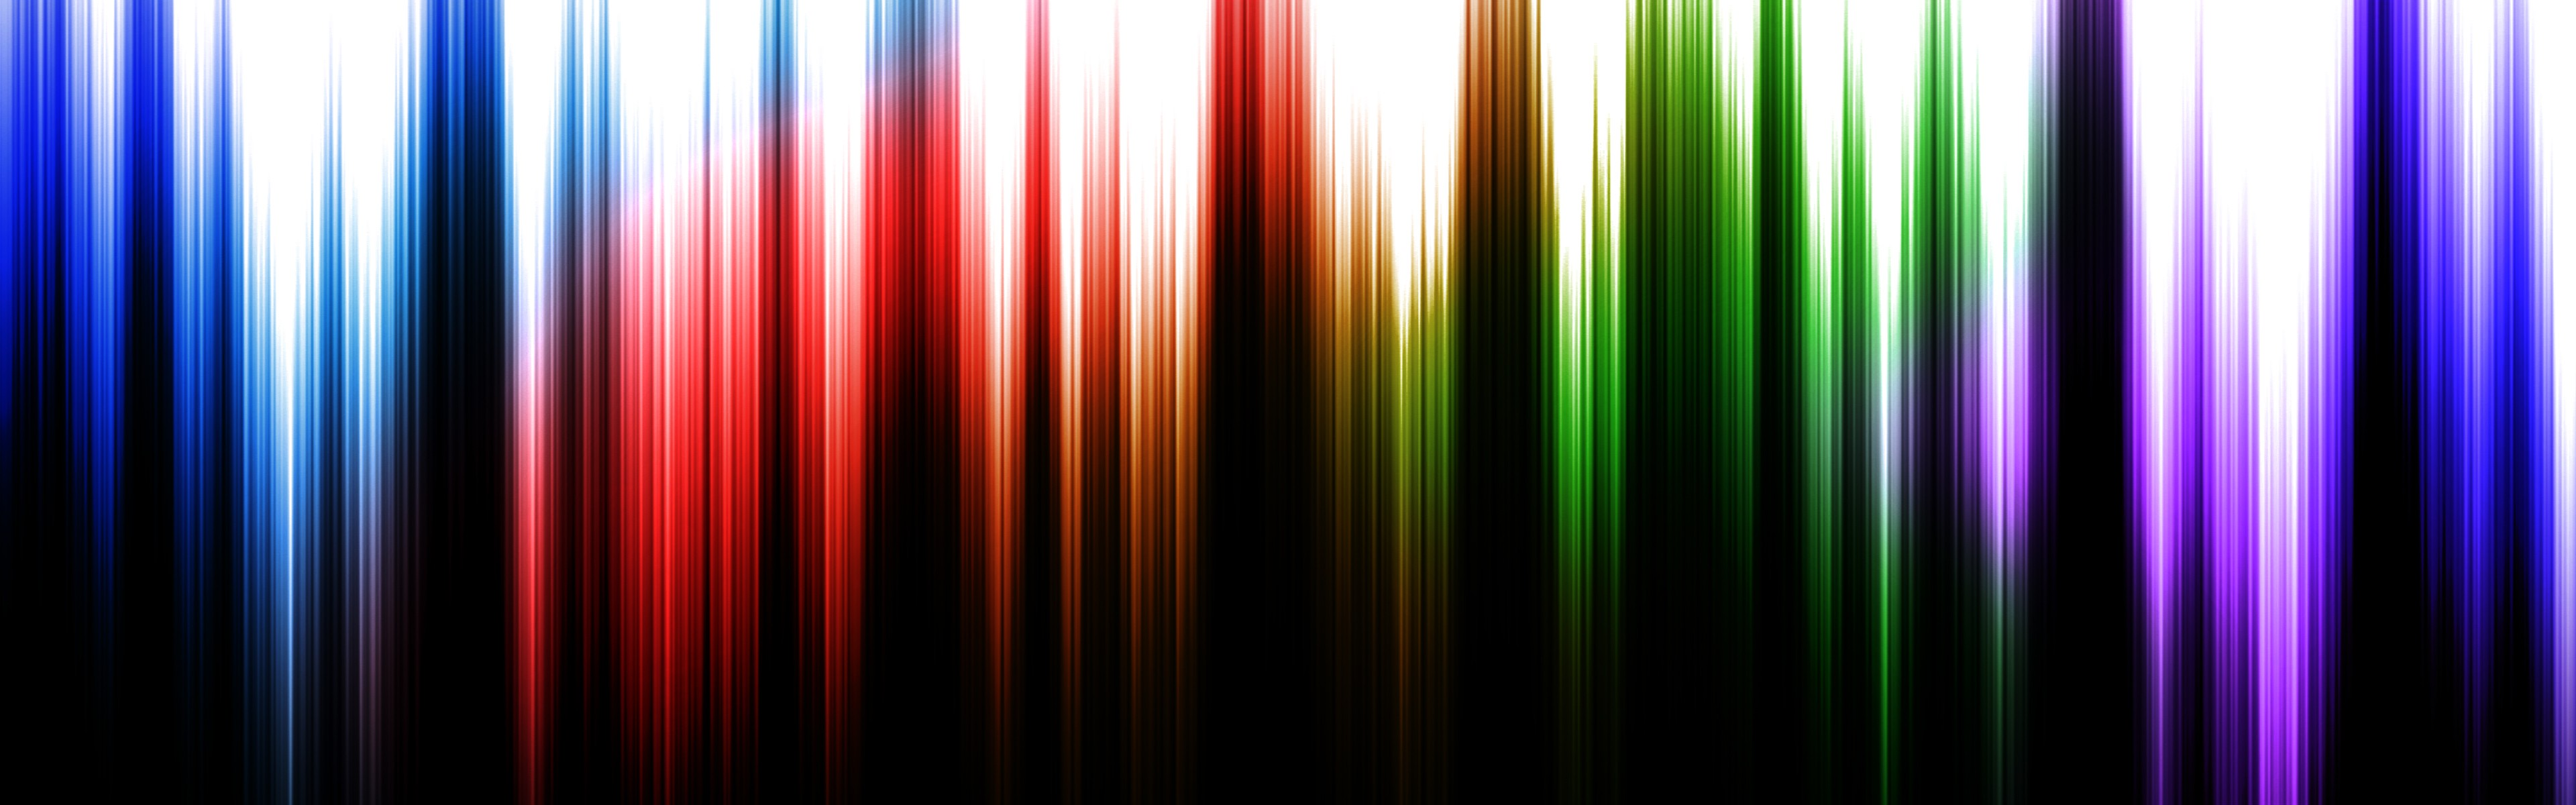 General 3840x1200 digital art colorful lines